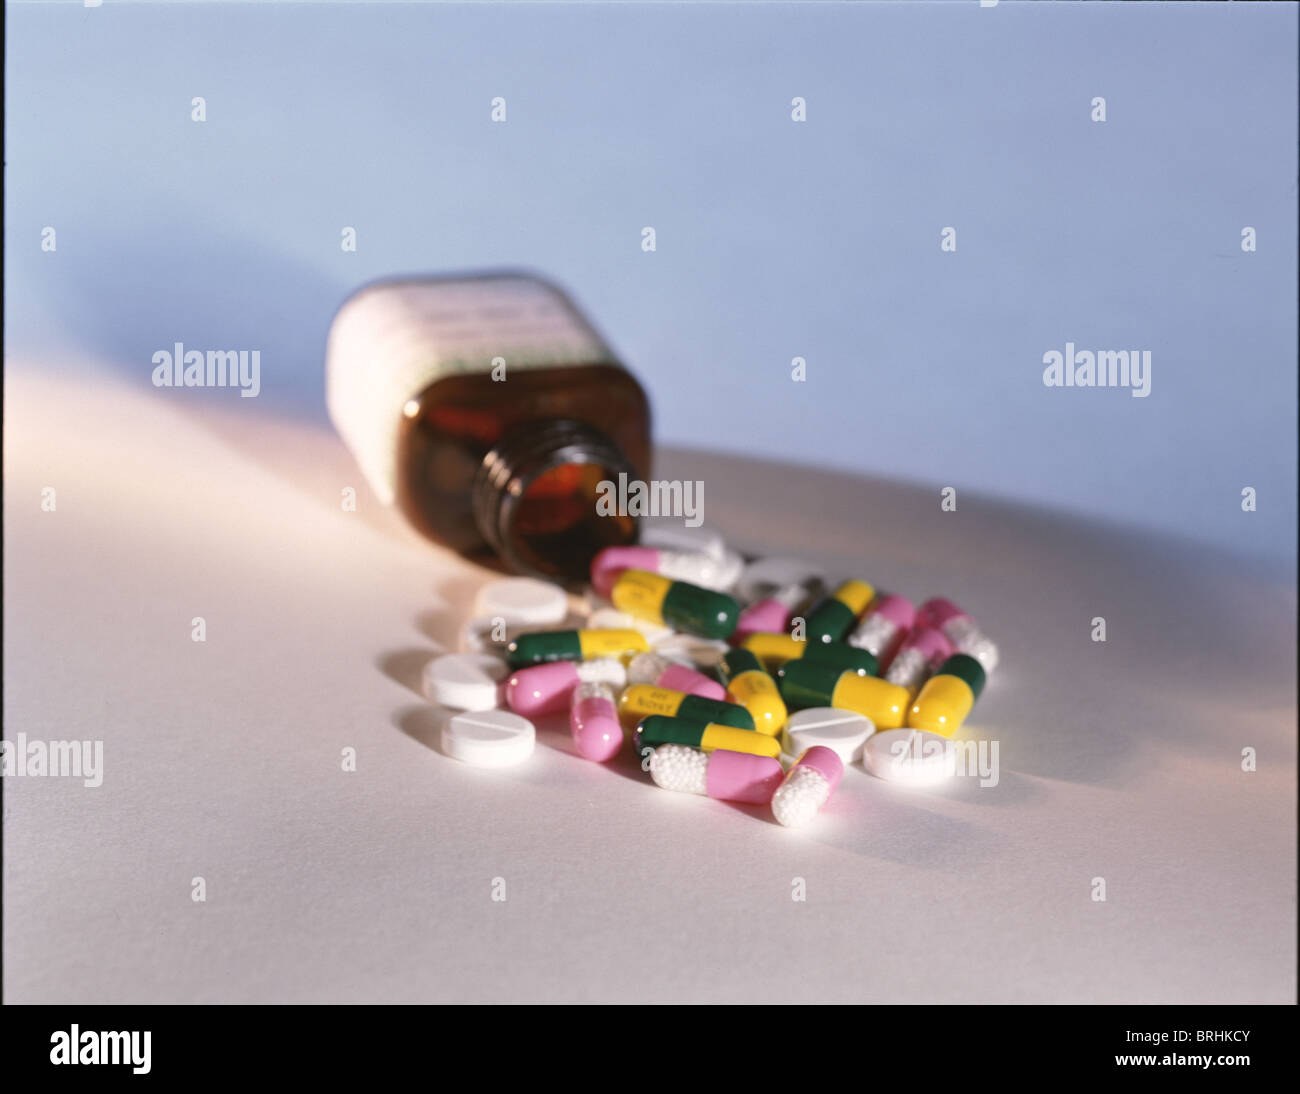 Bottle open on its side with pills spilled out - Stock Image